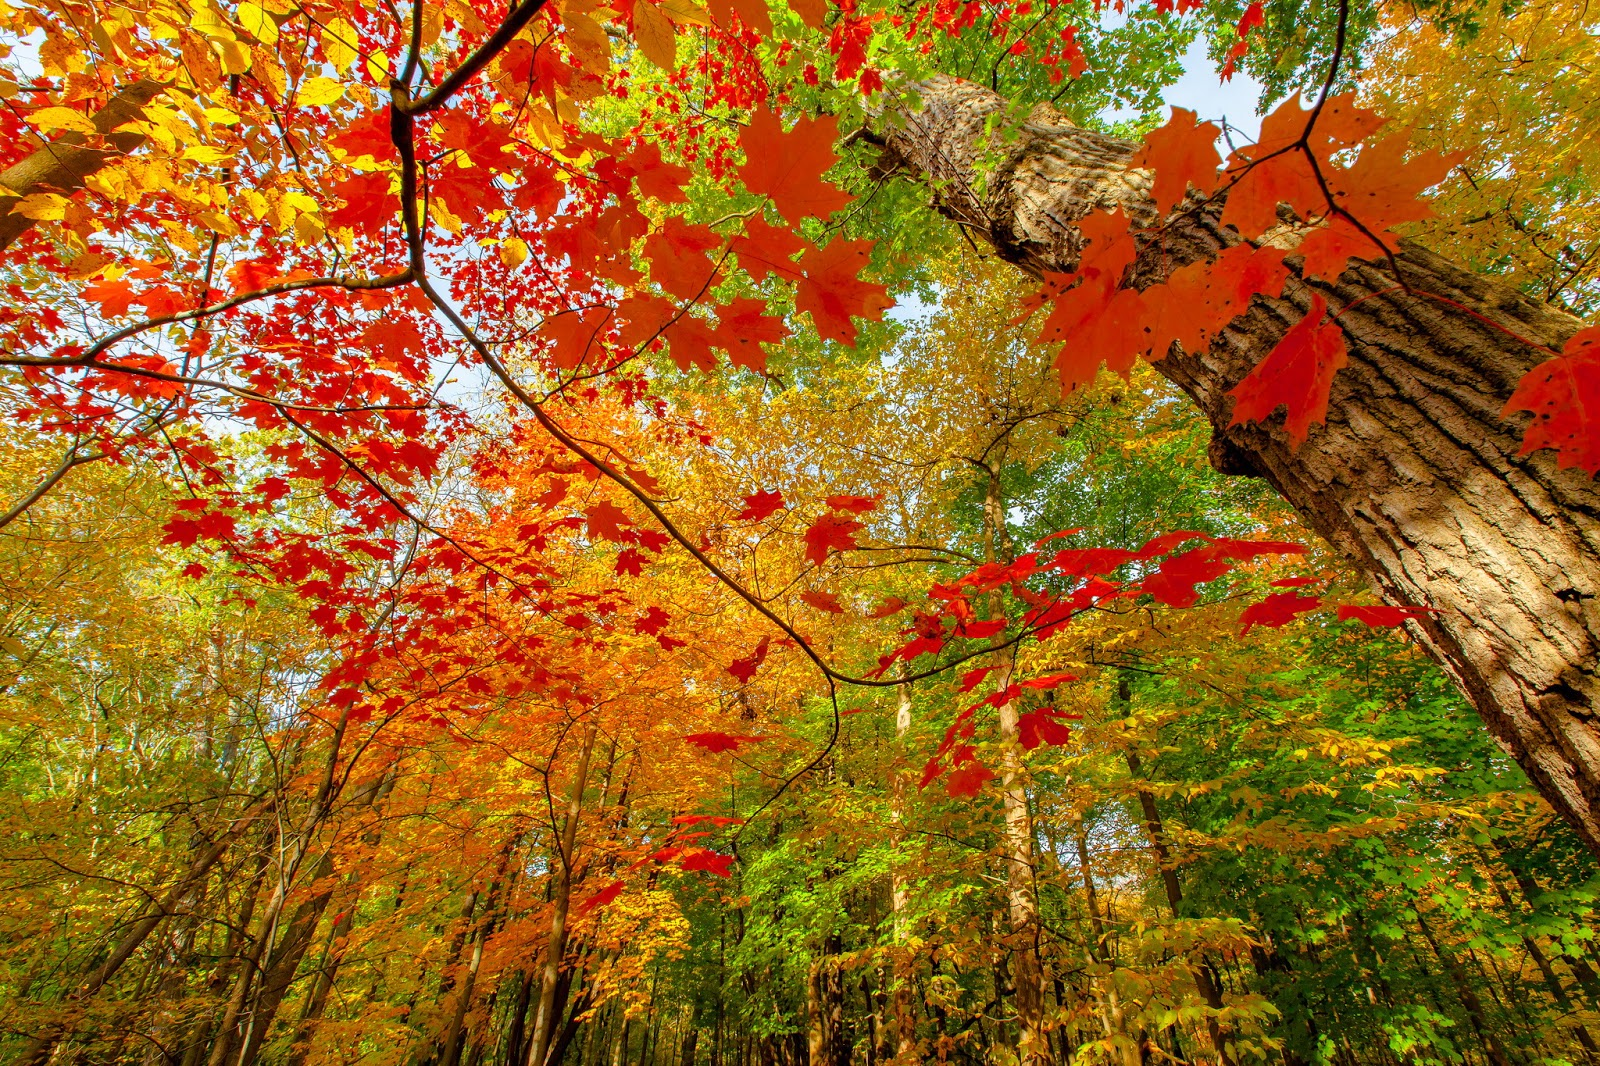 http://1ms.net/colorful-autumn-leaves-249354.html